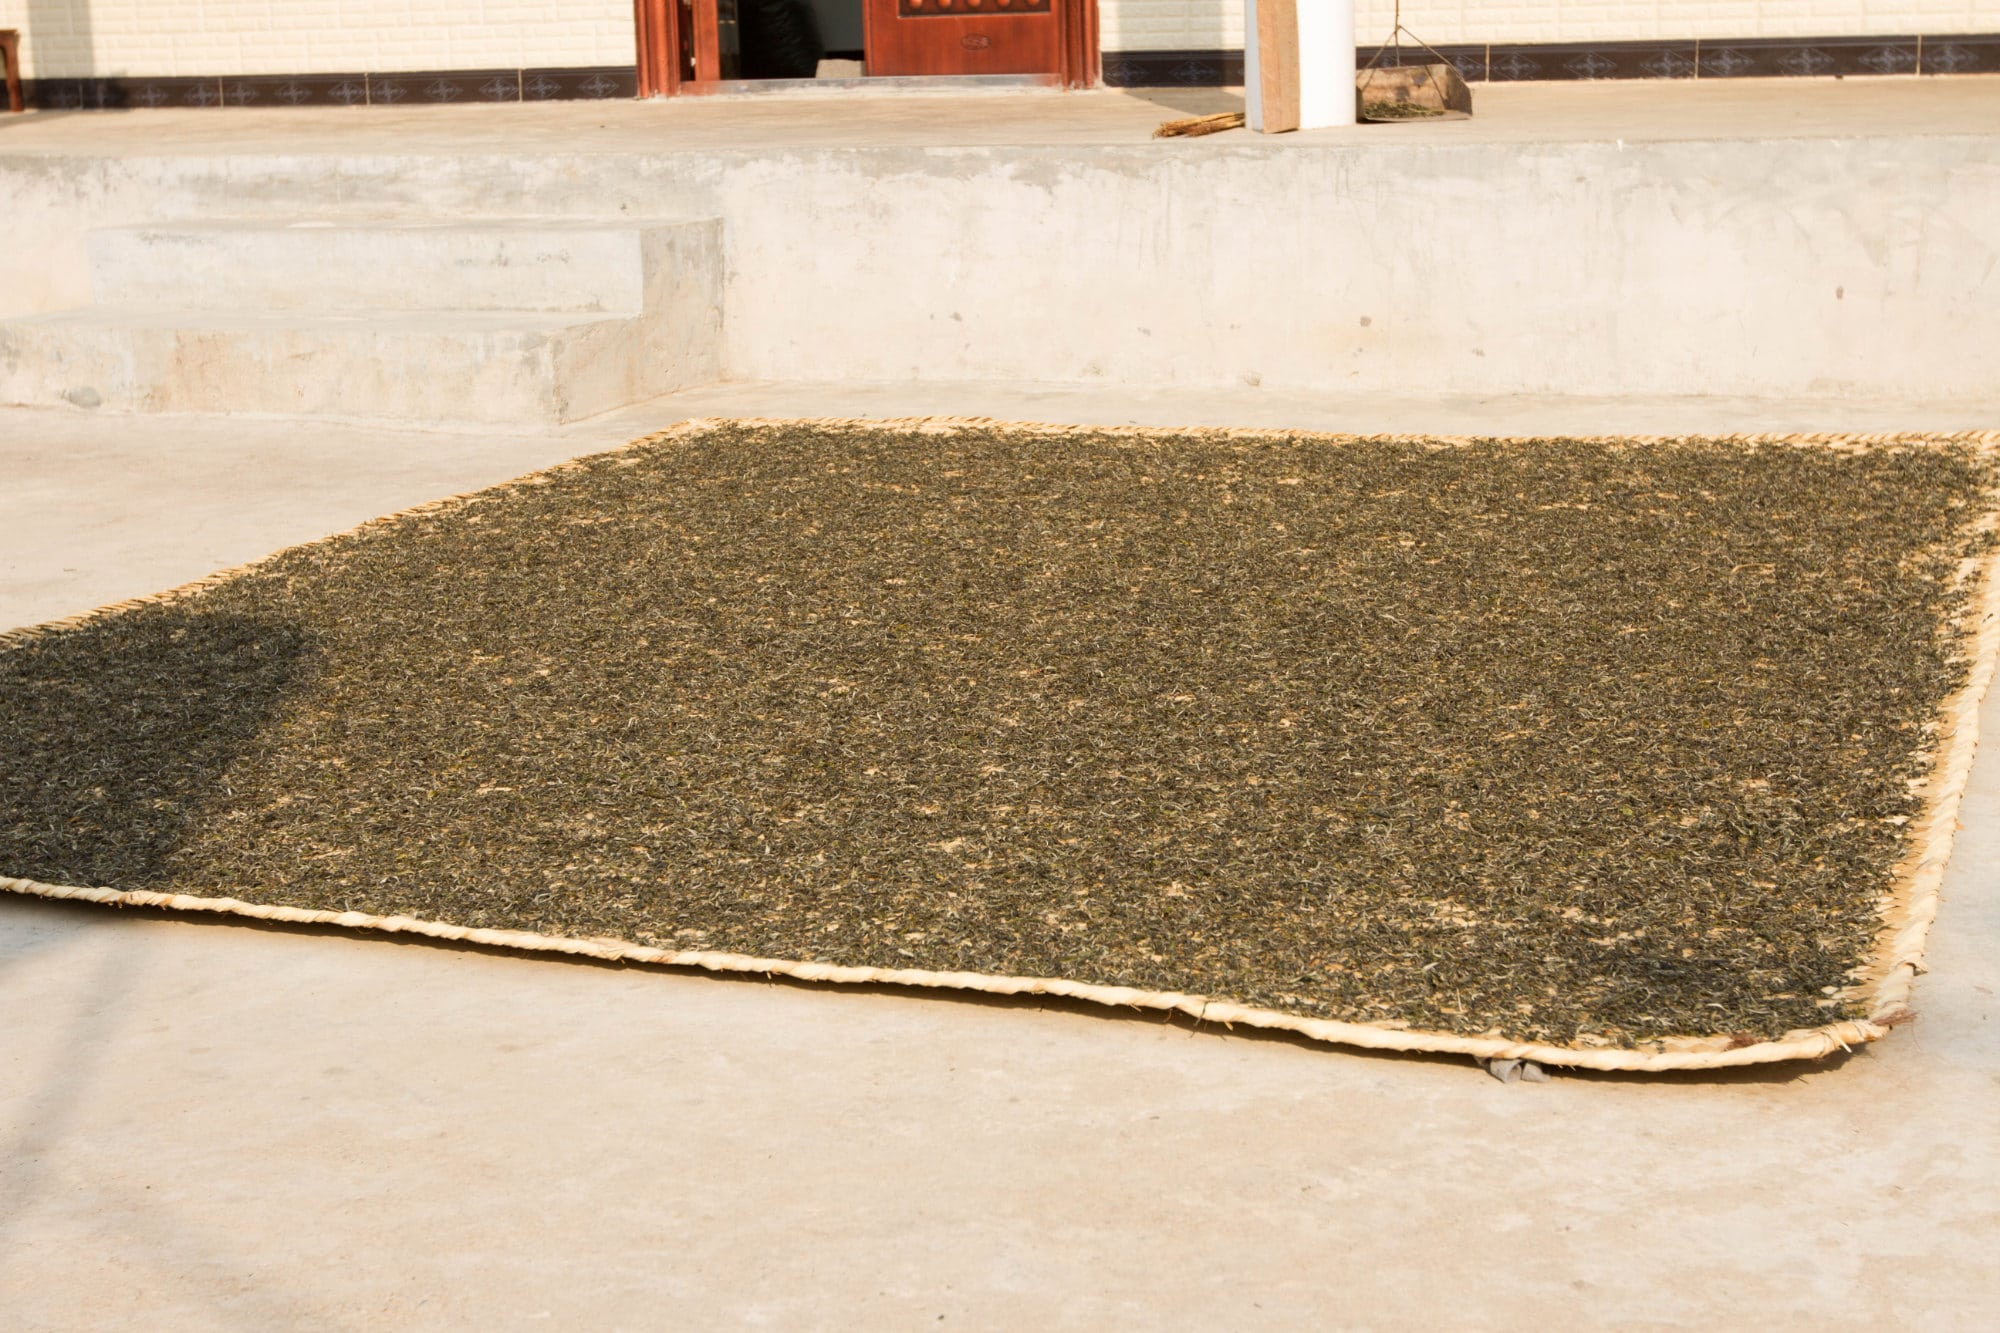 Tealet's Michael Petersen took this photo of tea sun drying